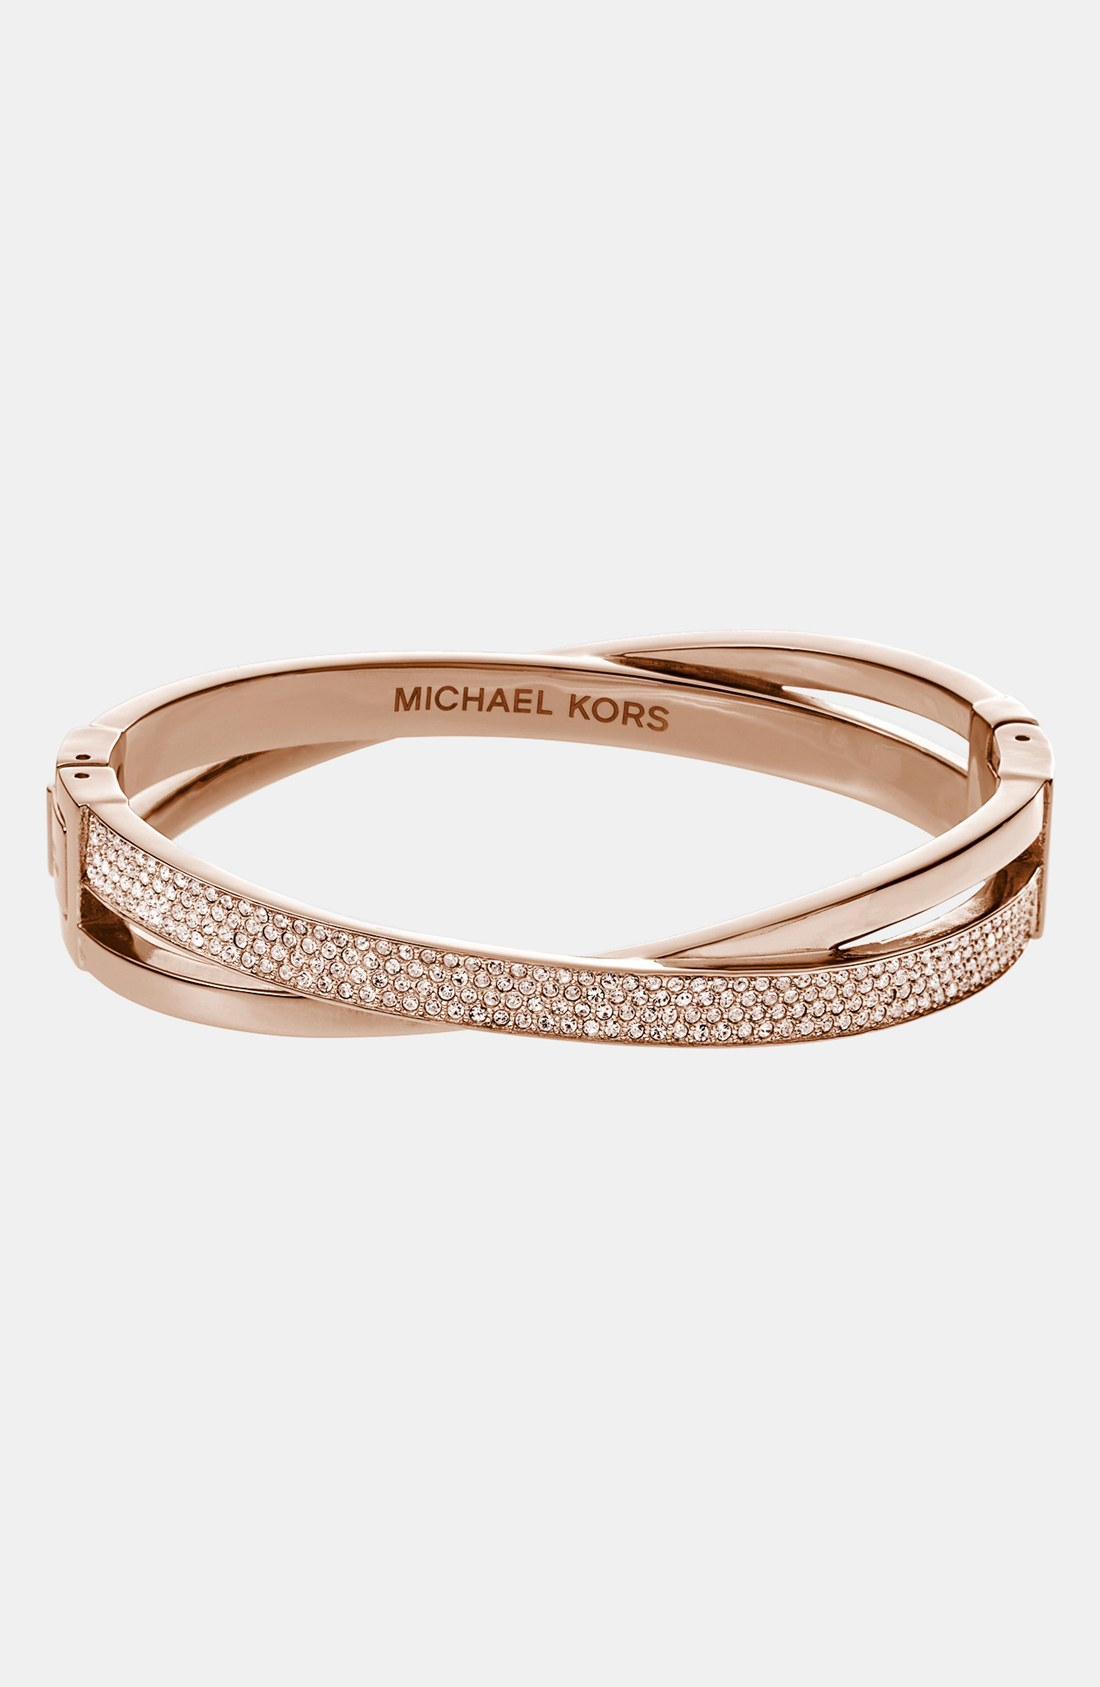 michael kors rose gold beaded bracelets car interior design. Black Bedroom Furniture Sets. Home Design Ideas